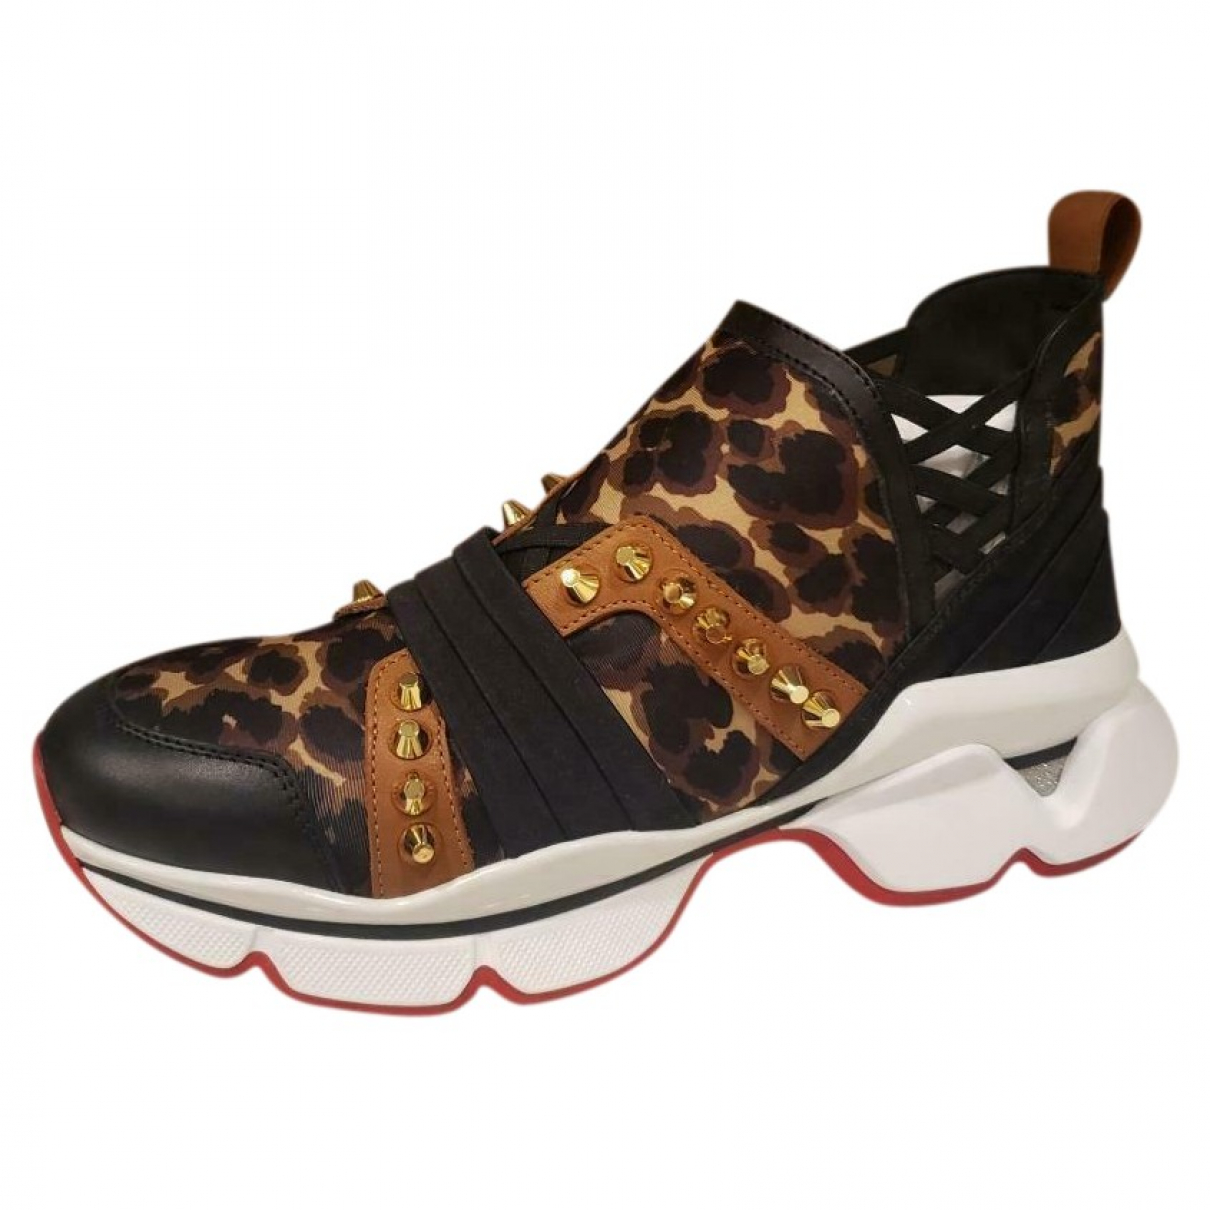 Christian Louboutin Red Runner Donna Glitter Sunset Brown Leather Trainers for Women 41 EU